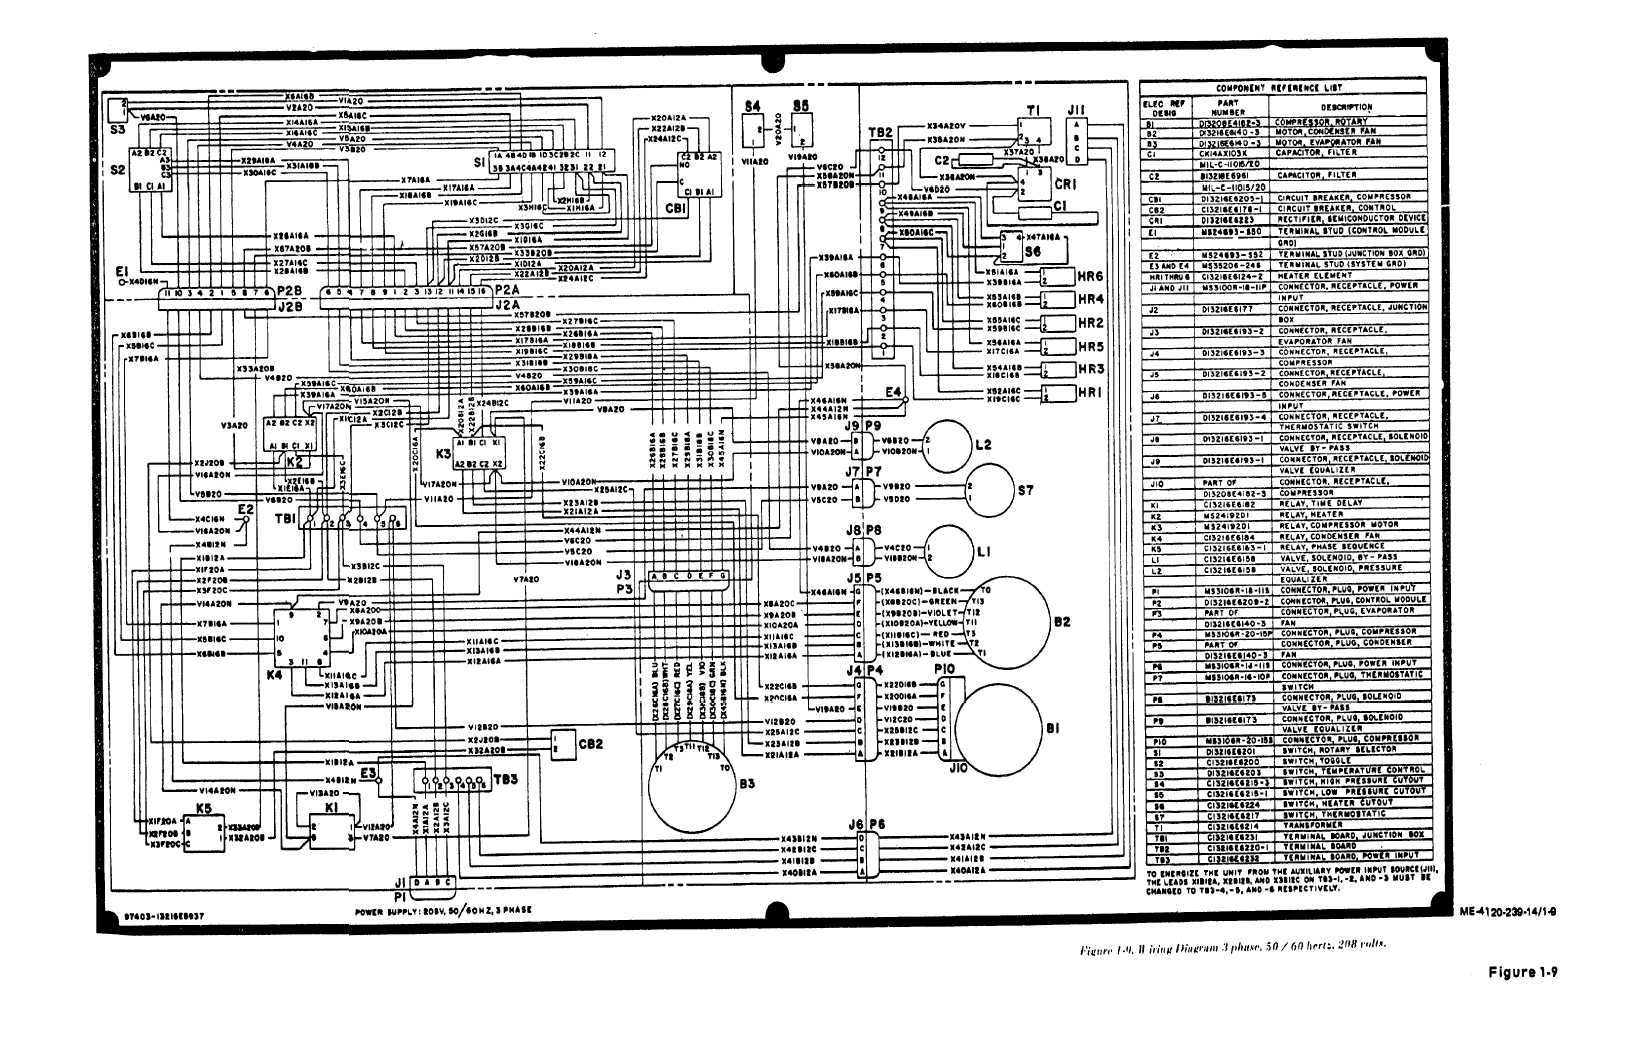 Figure 1 9 Wiring Diagram 3 Phase, 50 60 Hertz 208 Volts 208 Volt Single  Phase Wiring Diagram 208 Volt Wiring Diagram